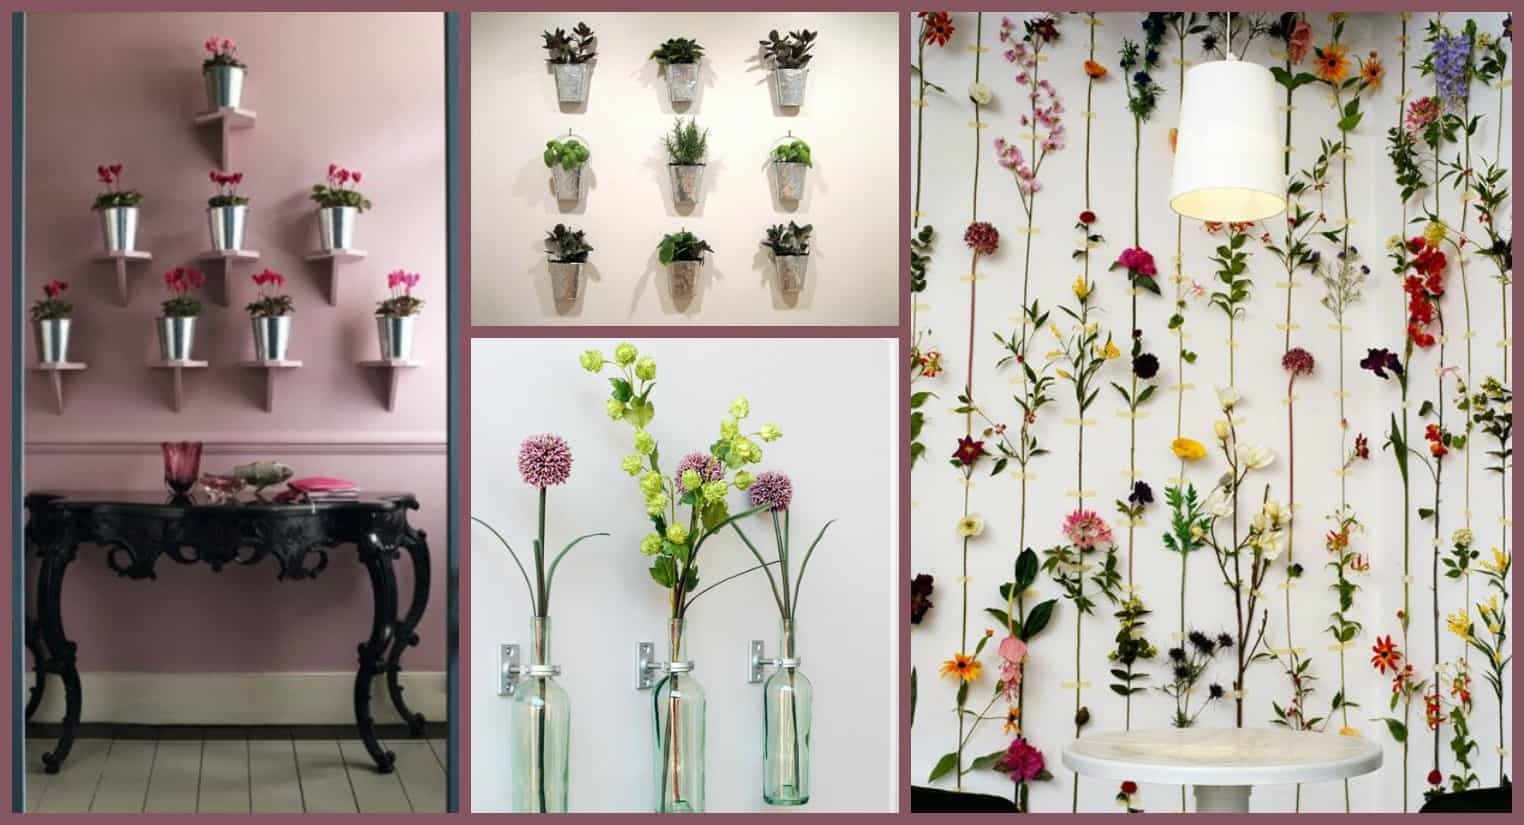 Diy 10 idee su come decorare una parete di casa for Decorazioni muro fai da te